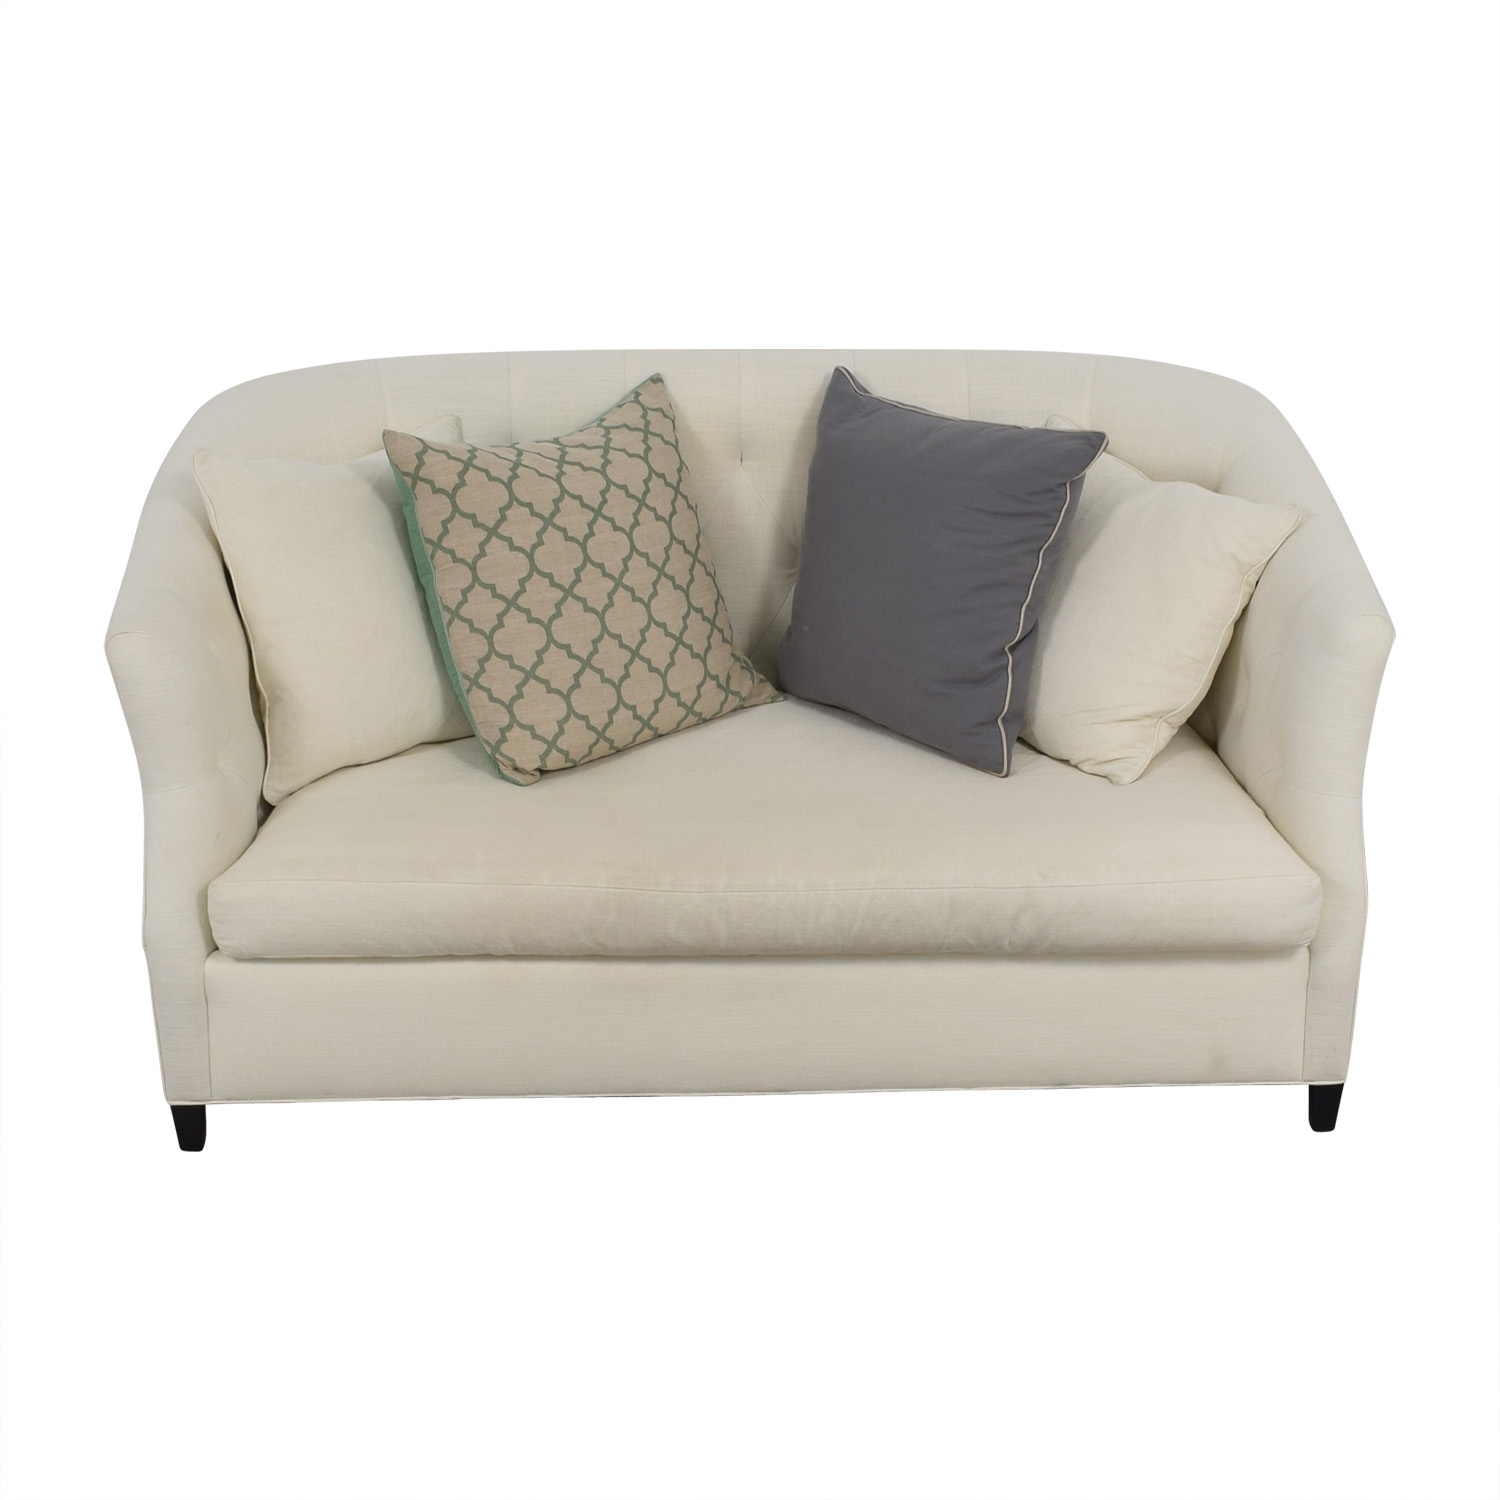 Safavieh Safavieh Tufted Off White Sette Sofa dimensions